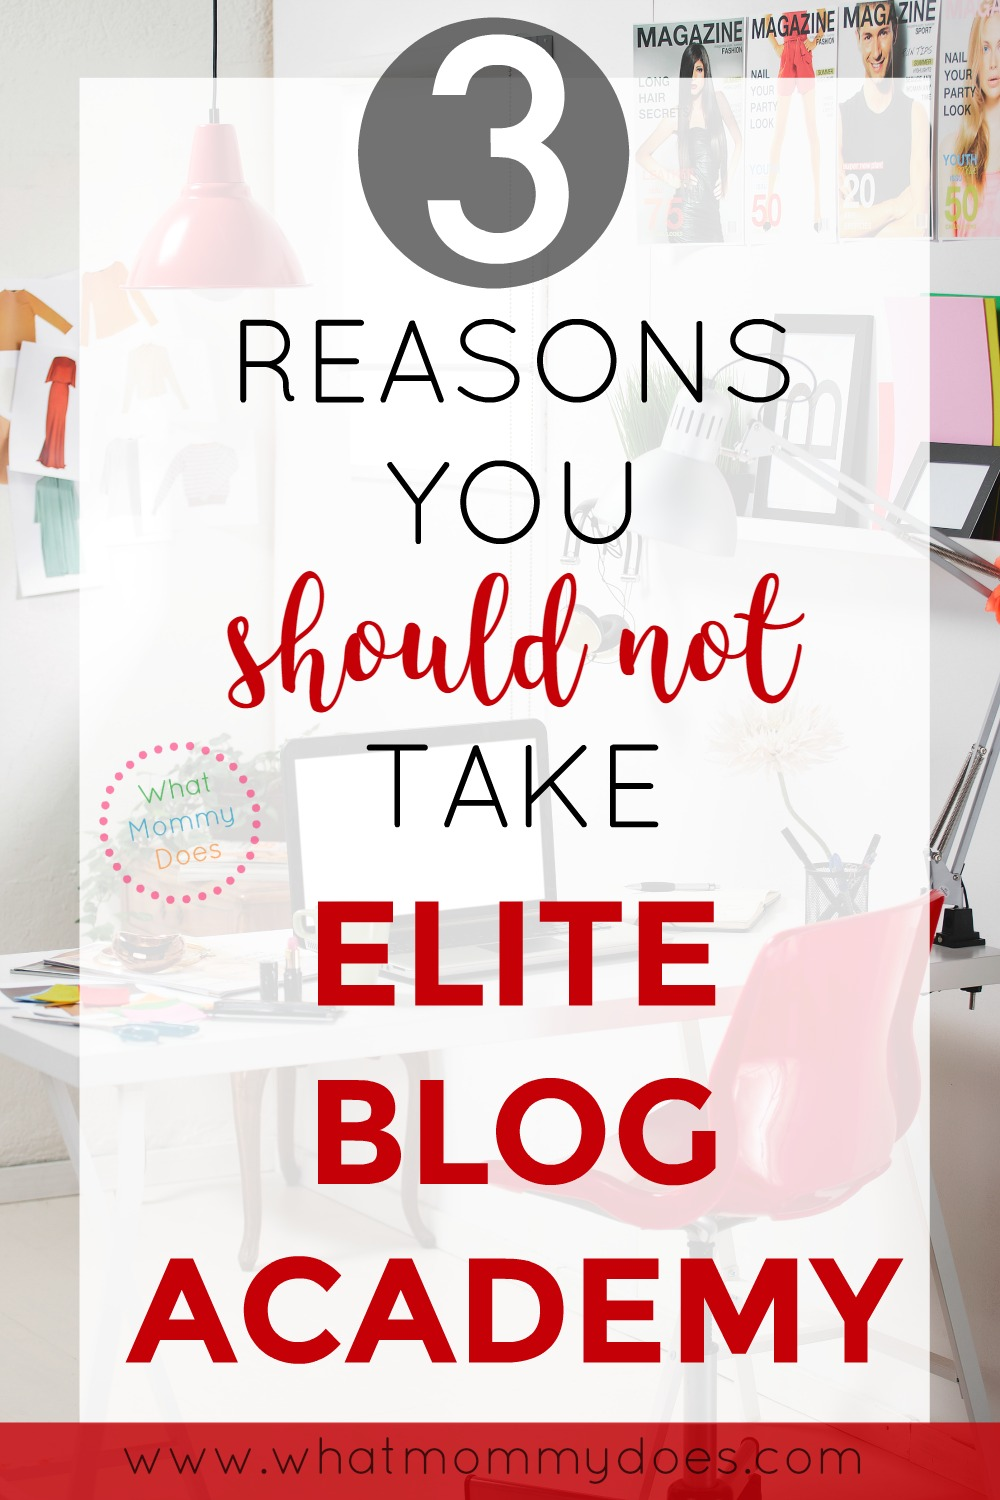 Have you heard of Elite Blog Academy but aren't sure if it's for you? I've got you covered! Here's exactly 3 reasons WHY you SHOULD NOT take the course! + we'll go into how I evaluate blog expenses like a CPA (what I'm trained to do). This should help you figure out which courses to take (or not!) :D | extra cash from home, get started making more money online, blogging tips, how to make money blogging, blogging for money, mom entrepreneur ideas